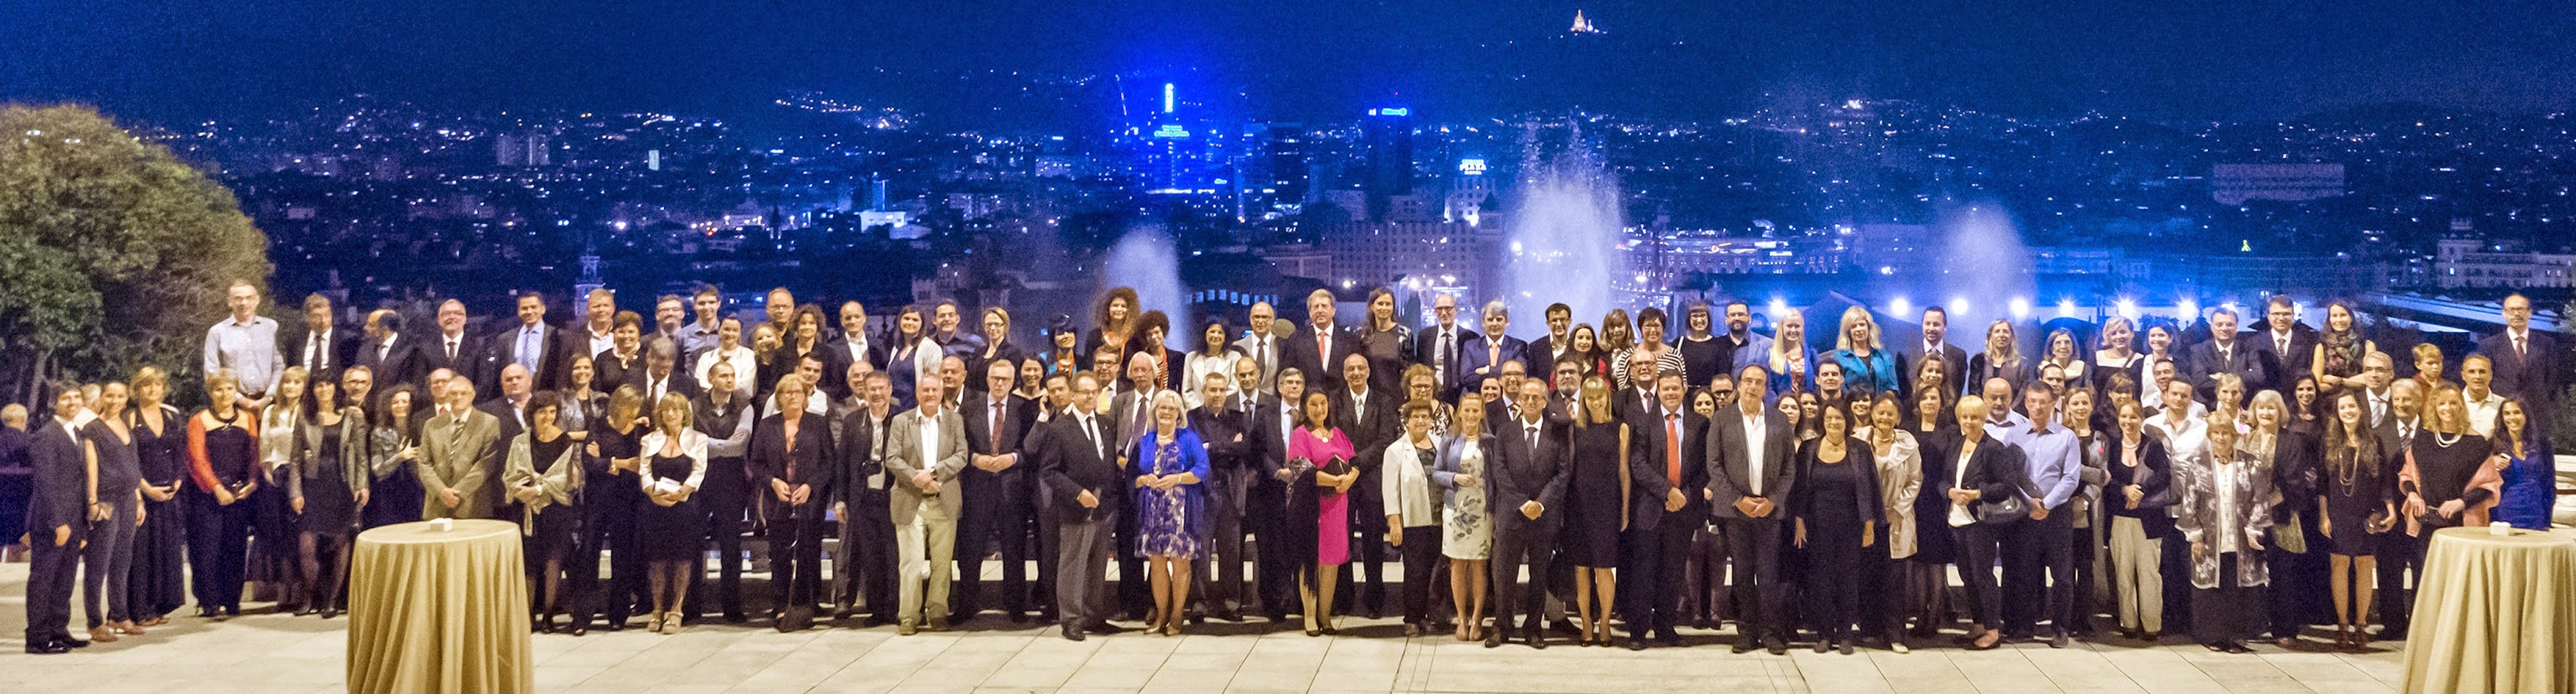 Group photo from AGM 2014 in Barcelona, Spain